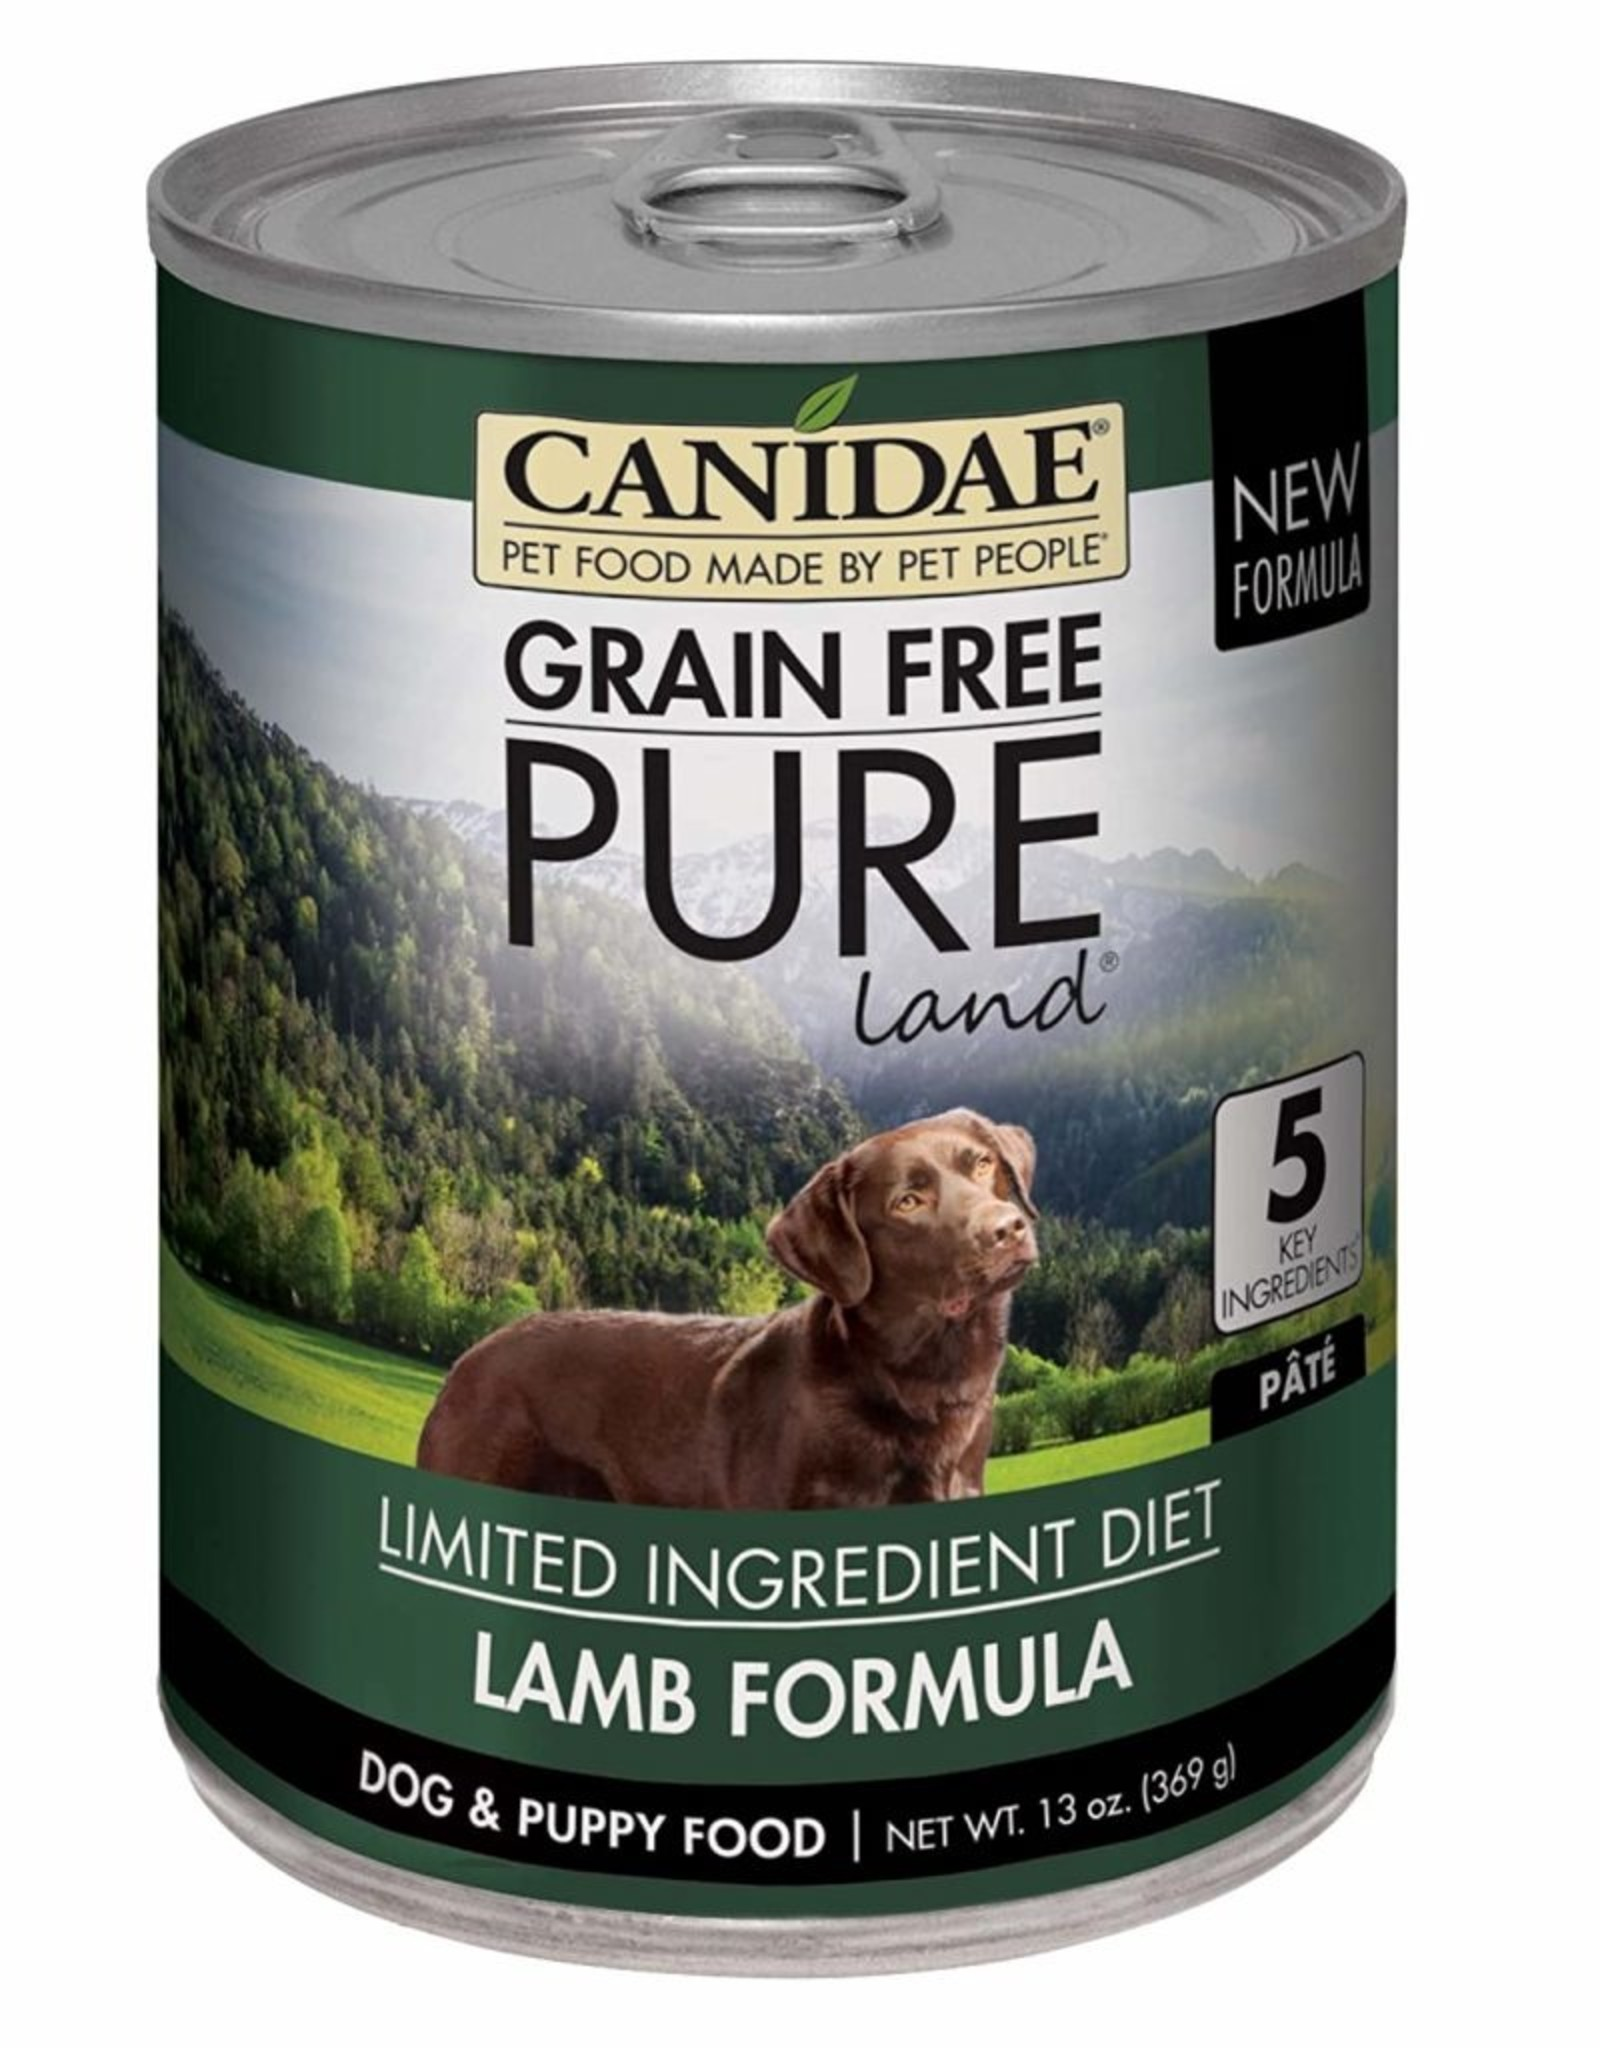 CANIDAE PET FOODS CANIDAE DOG CAN PURE LAND LAMB 13OZ